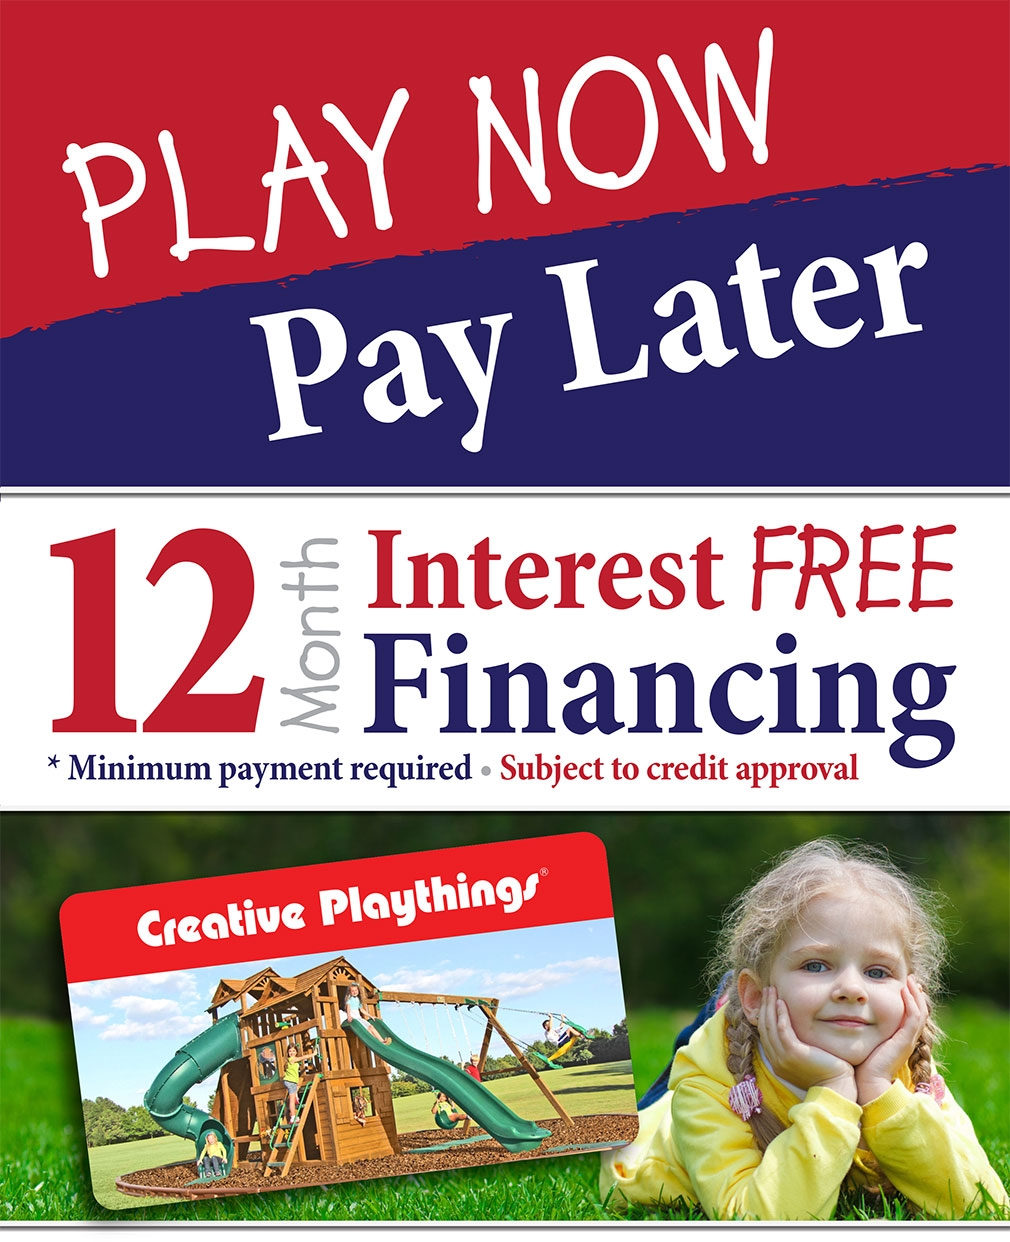 Interest FREE Financing for 12 Months!